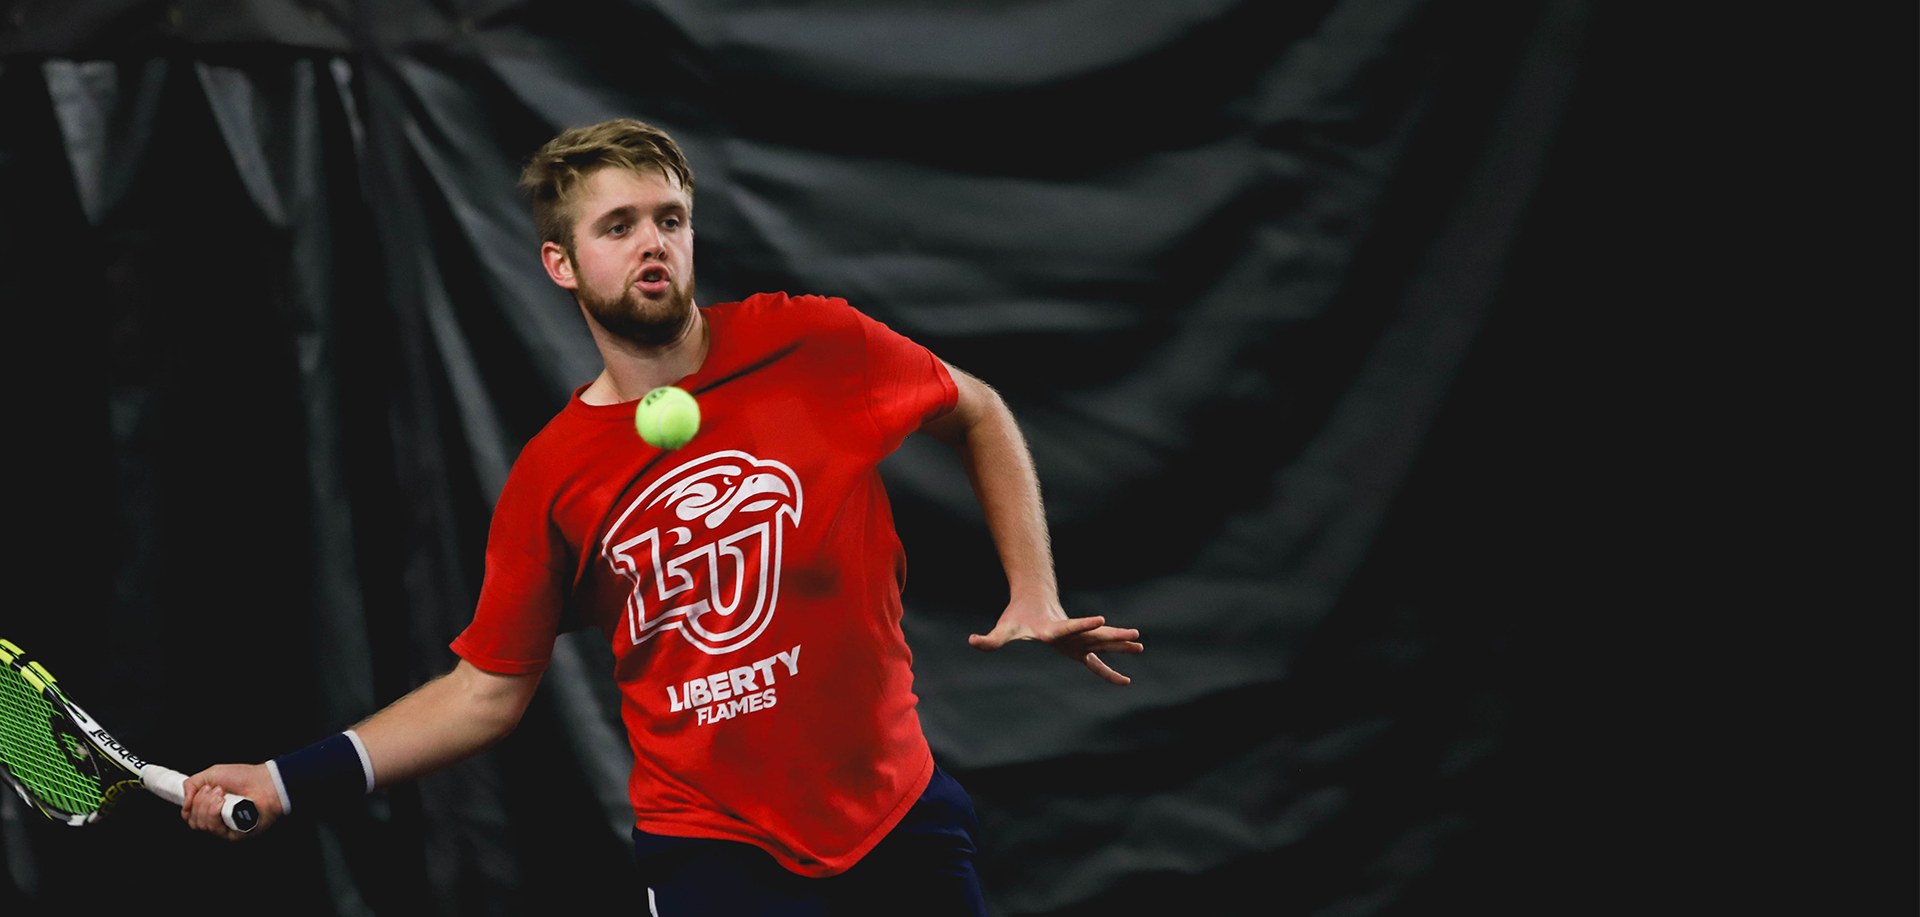 Borcuti's singles win clinched the match for Liberty over George Mason, Friday.